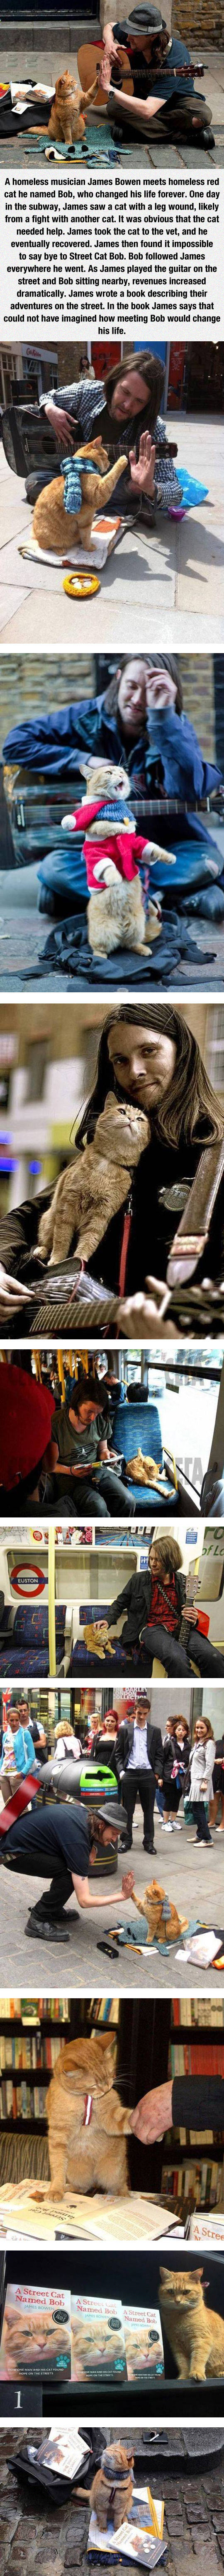 cool-homeless-musician-cat-guitar